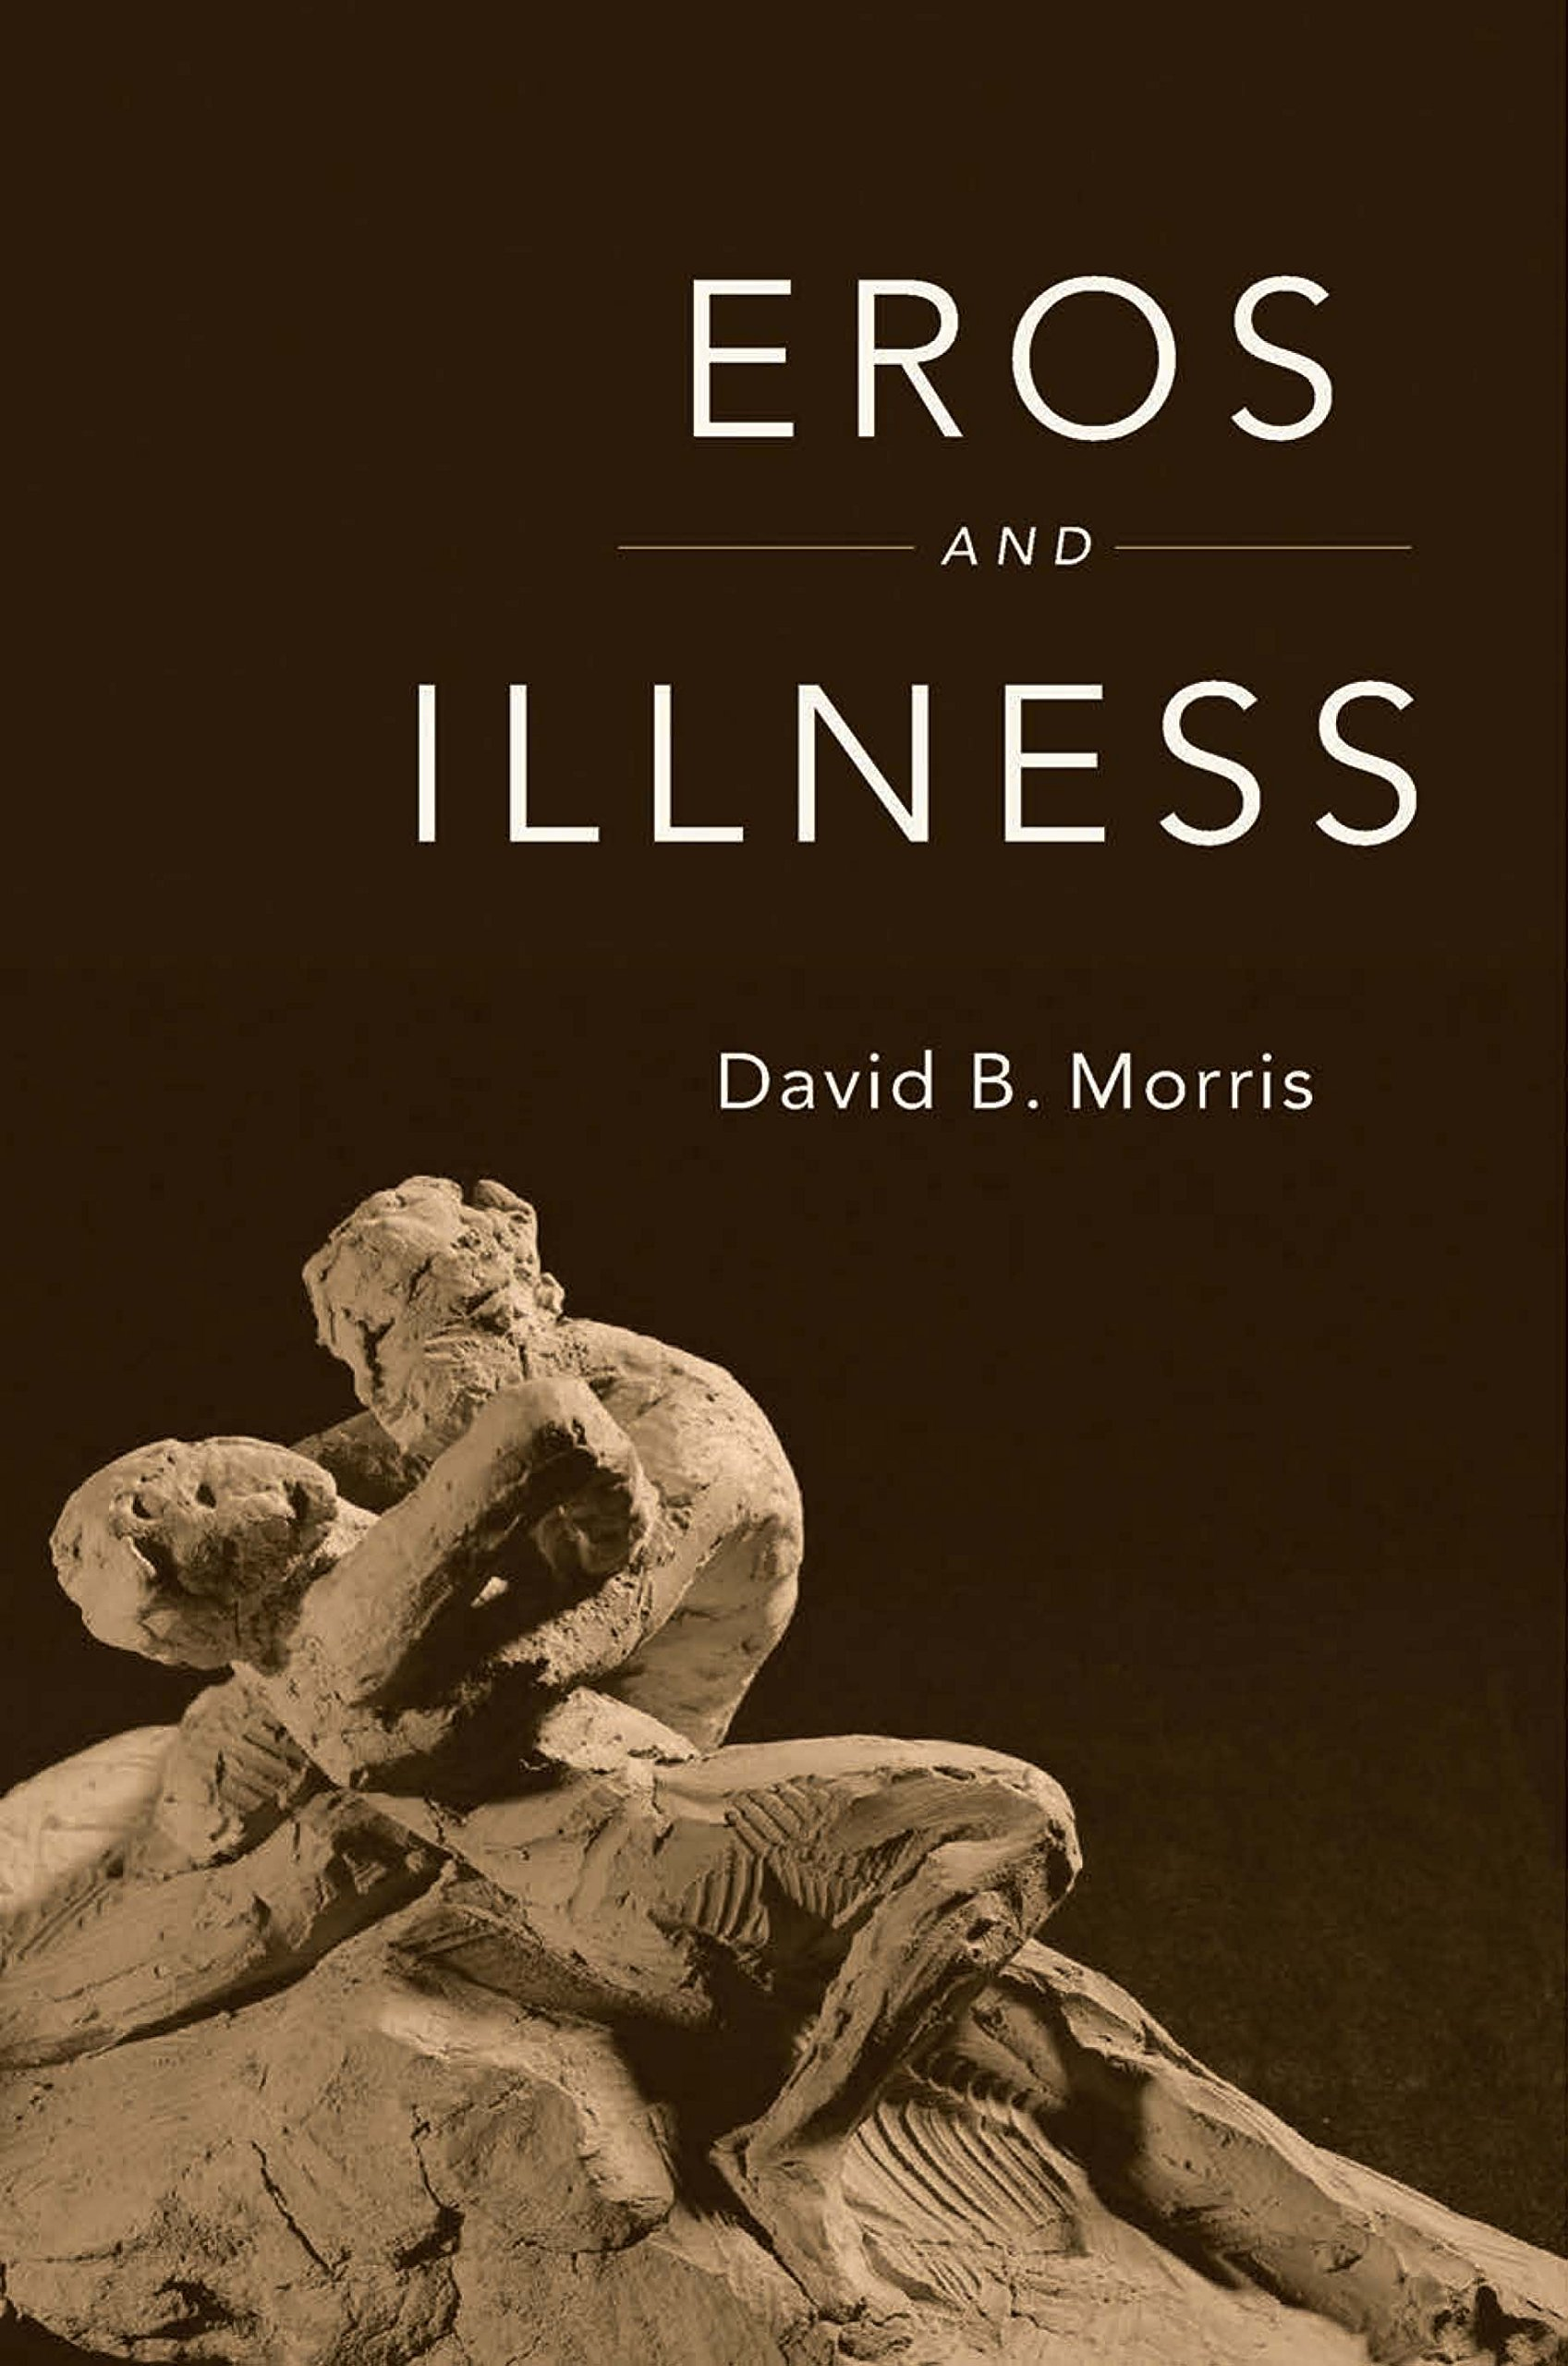 Download Eros And Illness (English Edition) 